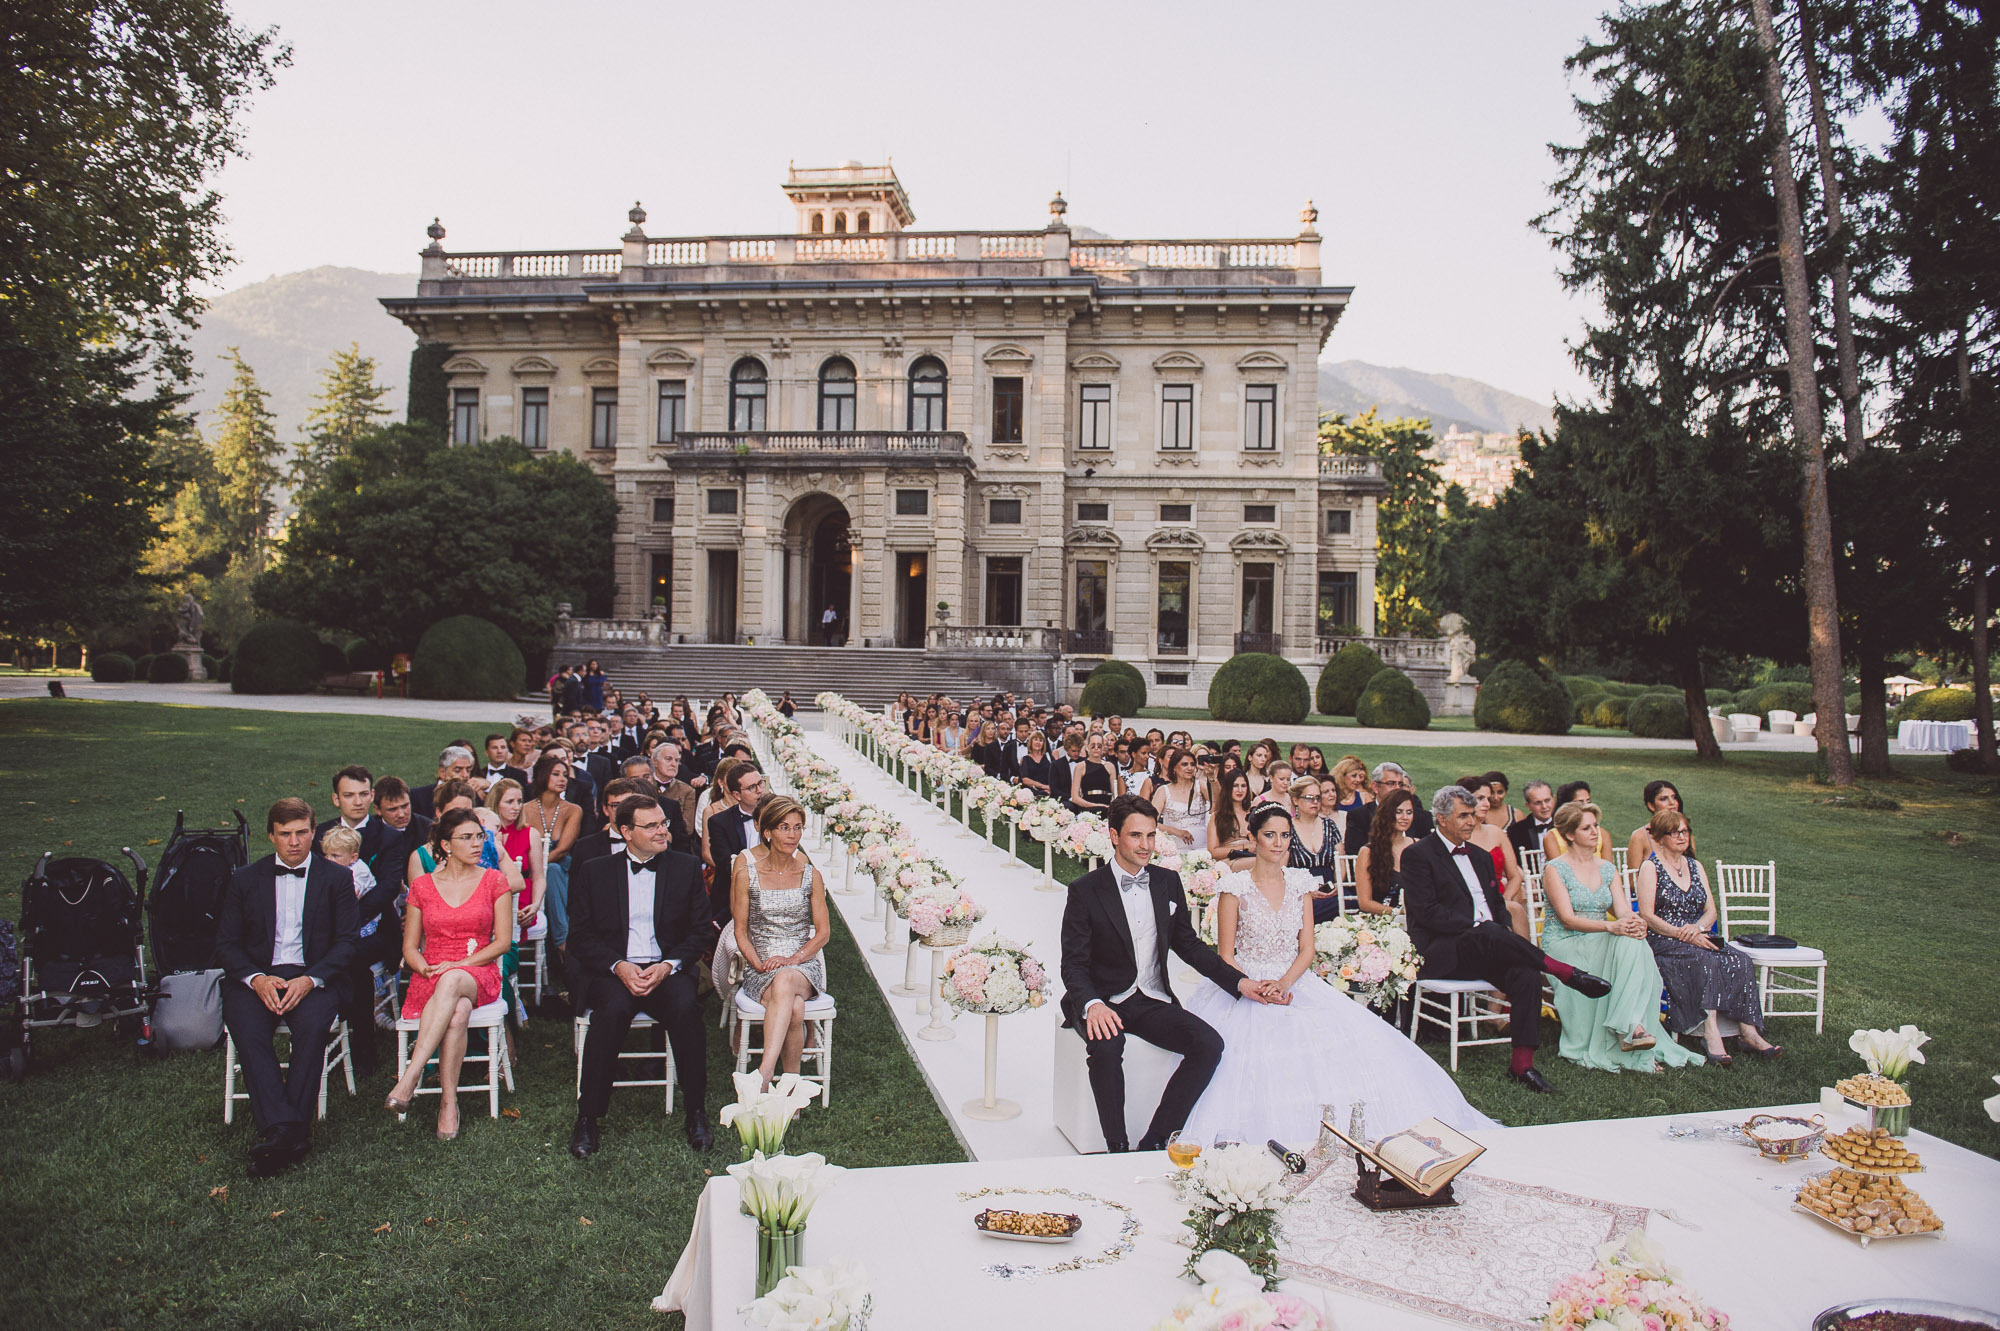 villa Erba wedding venue in Italy